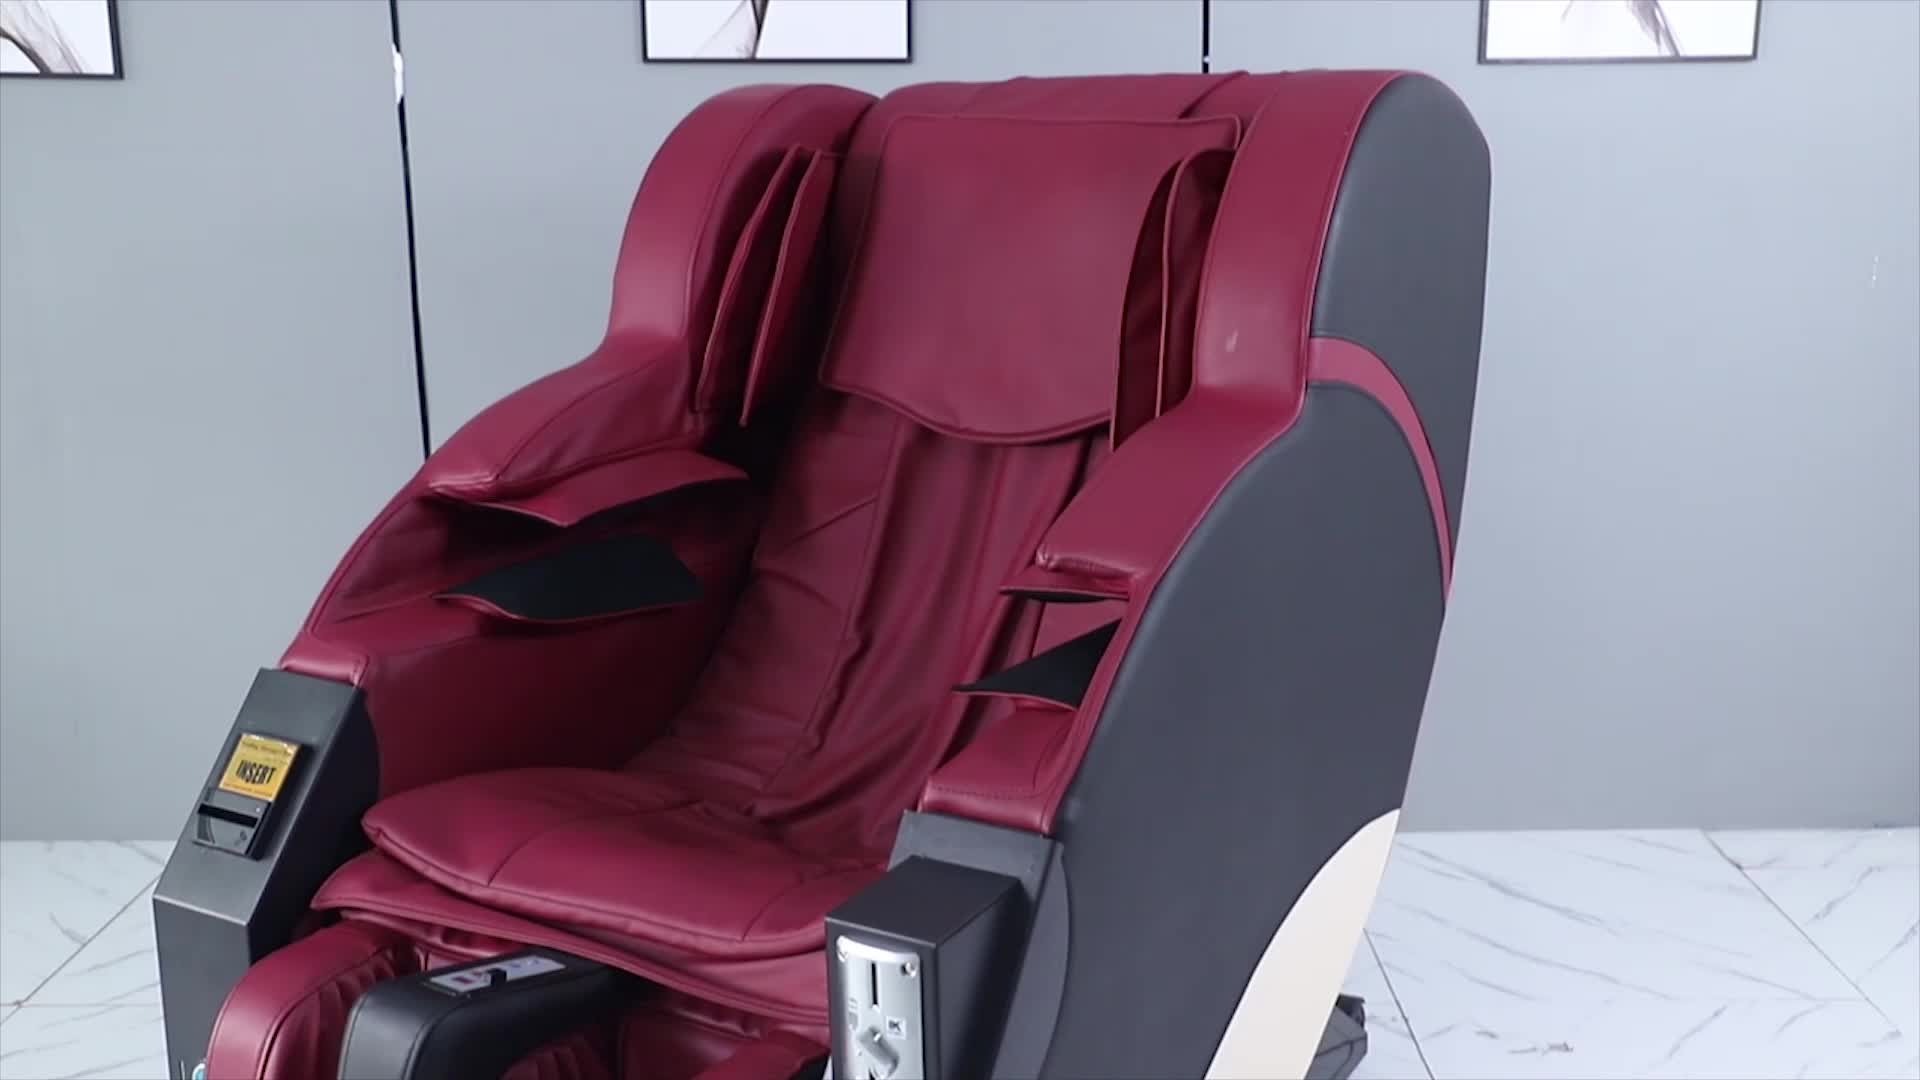 Electric Zero Gravity Full Body Massage Chair With Foot Massage